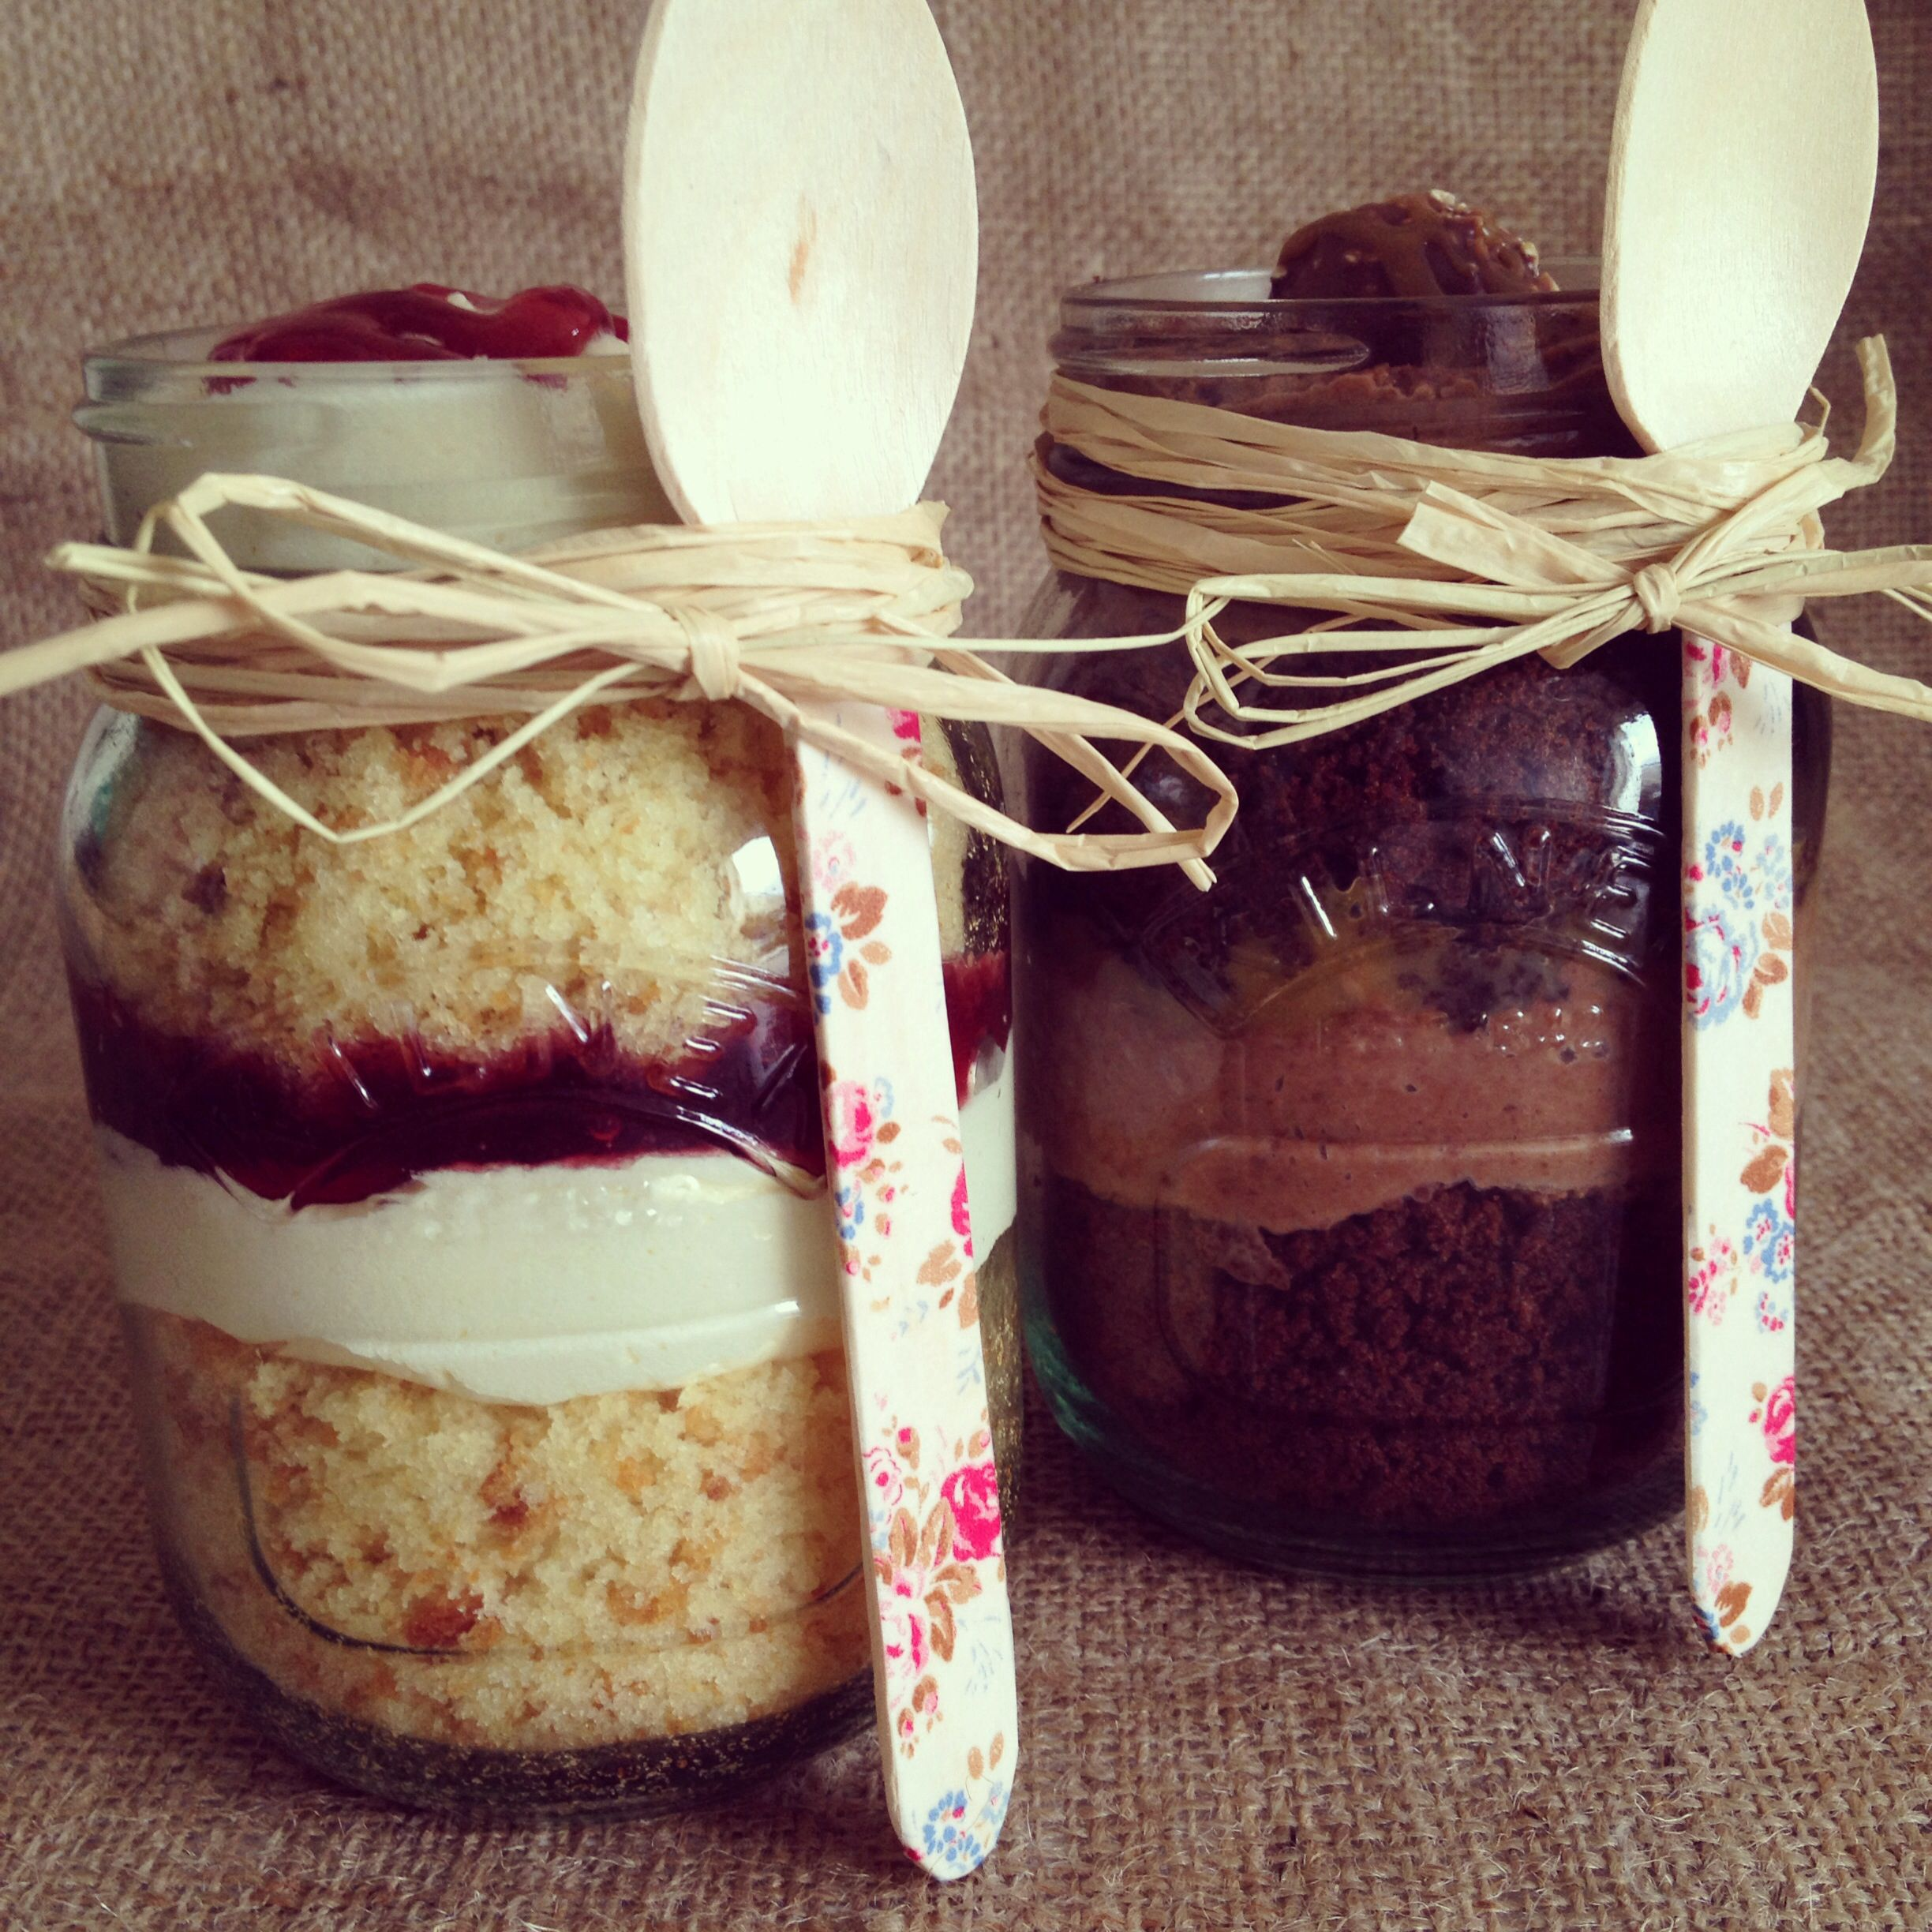 Cake Jars Victoria Sponge And Chocolate Sponge All Together In